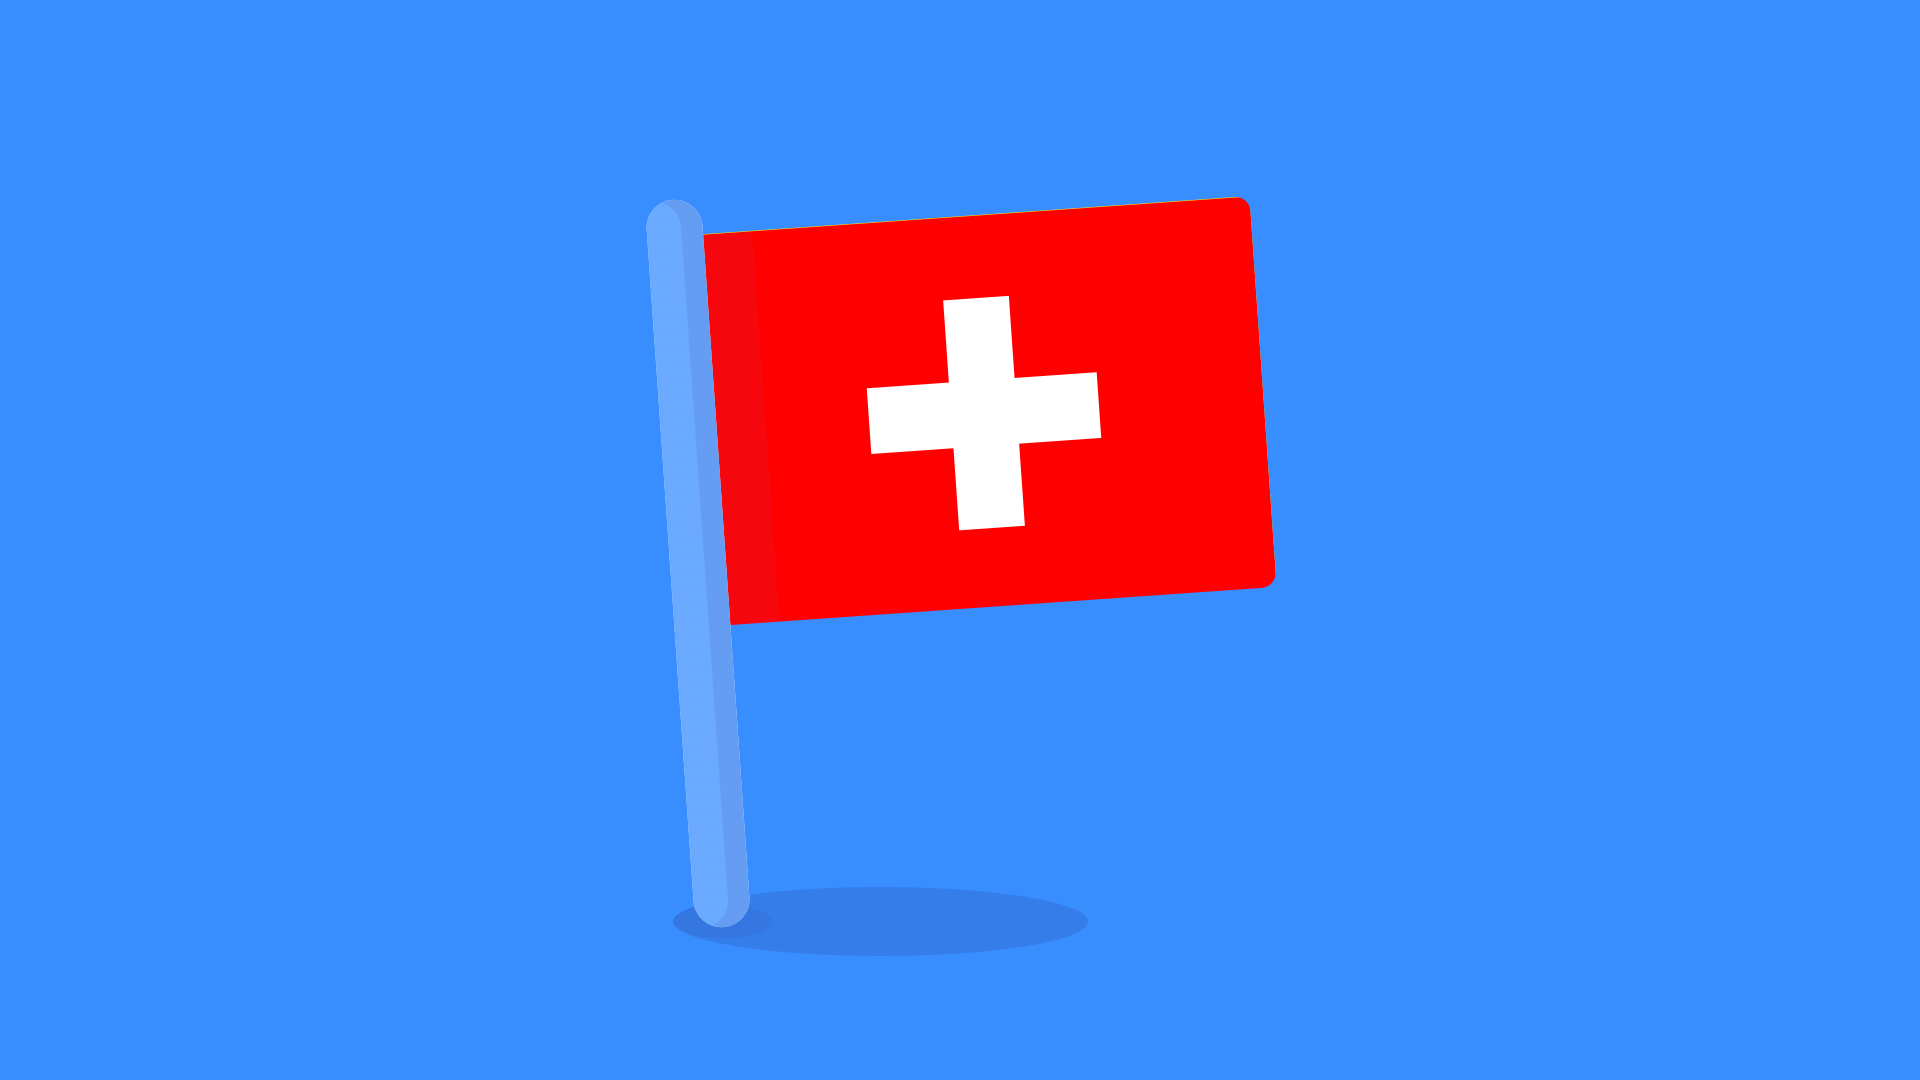 Swiss flag on blue Monese background